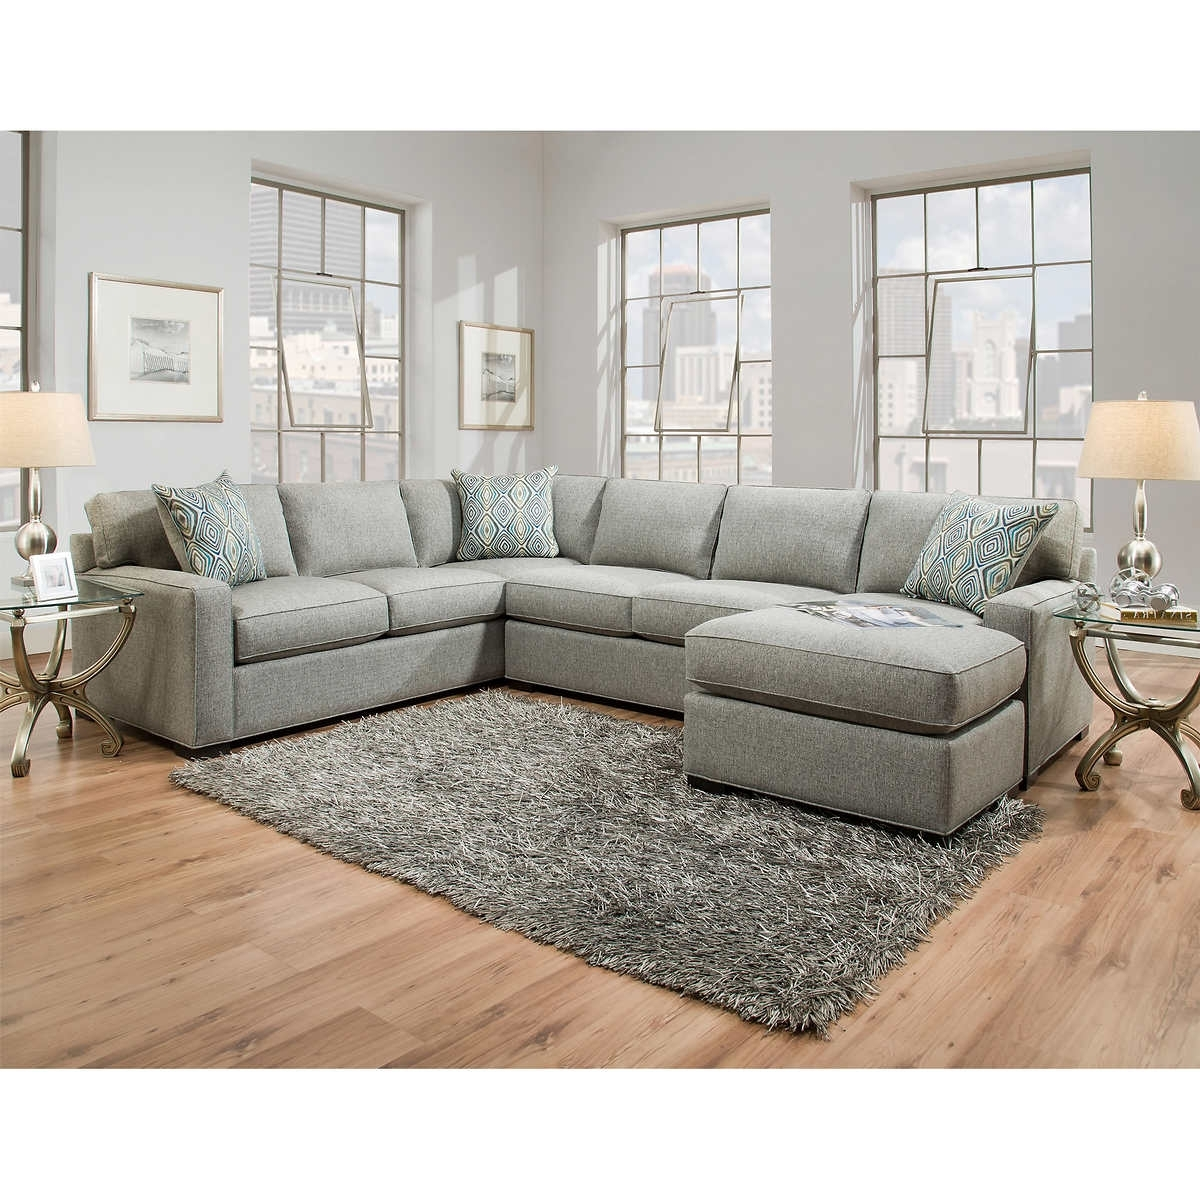 Best And Newest New Sofa Sectionals Costco 57 About Remodel Expensive Sectional Within Cozy Sectional Sofas (View 12 of 15)